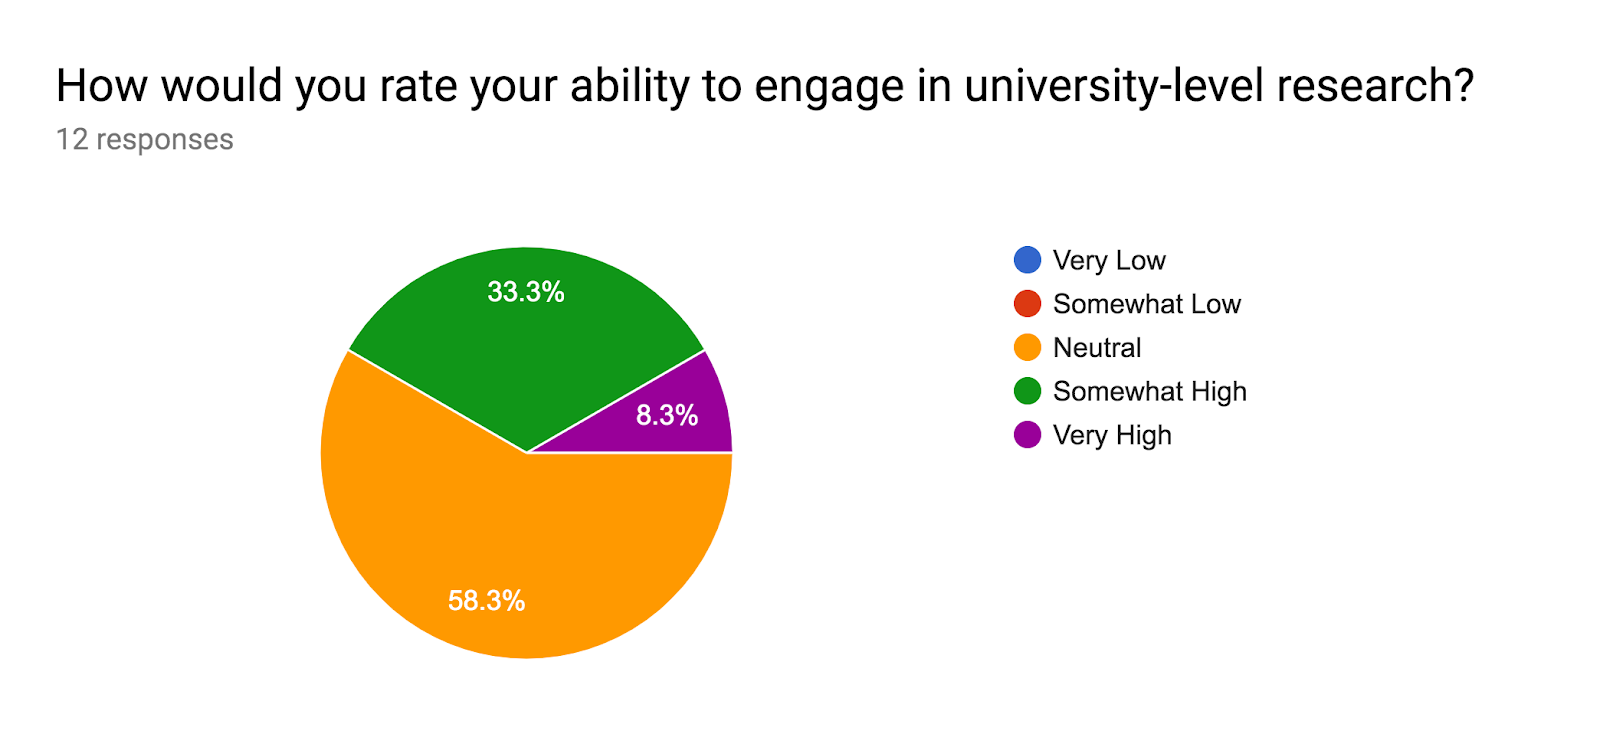 Forms response chart. Question title: How would you rate your ability to engage in university-level research?. Number of responses: 12 responses.